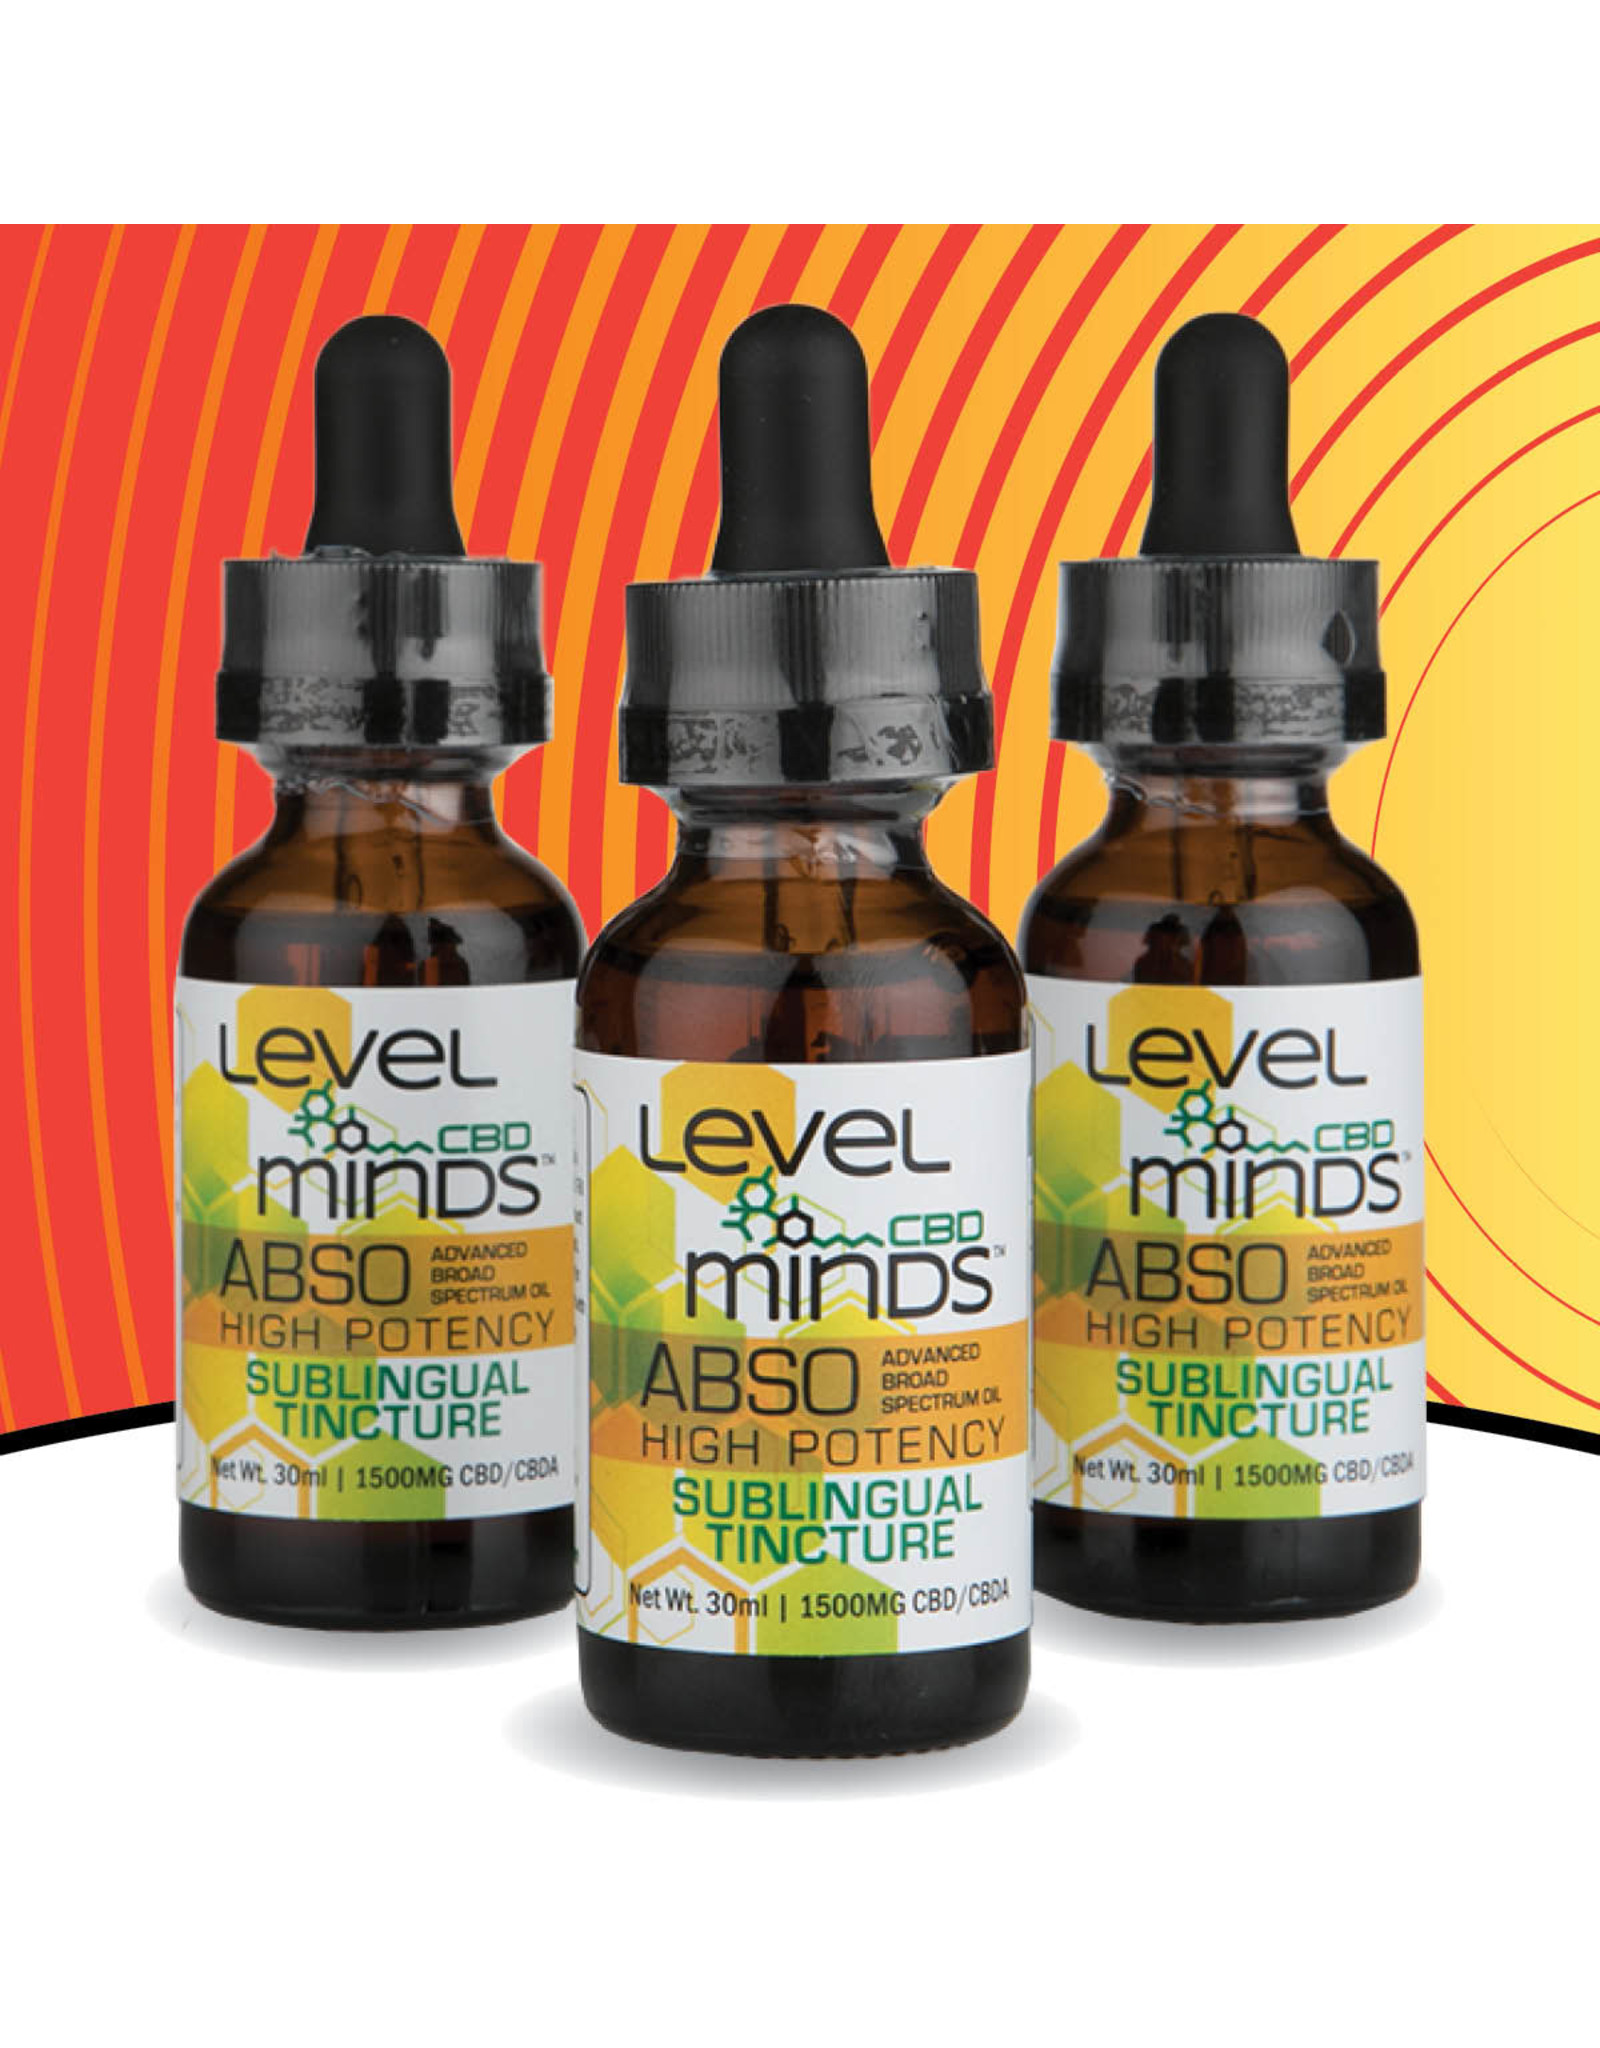 Level Minds Level Minds ASBO Tincture 1500mg 30ml